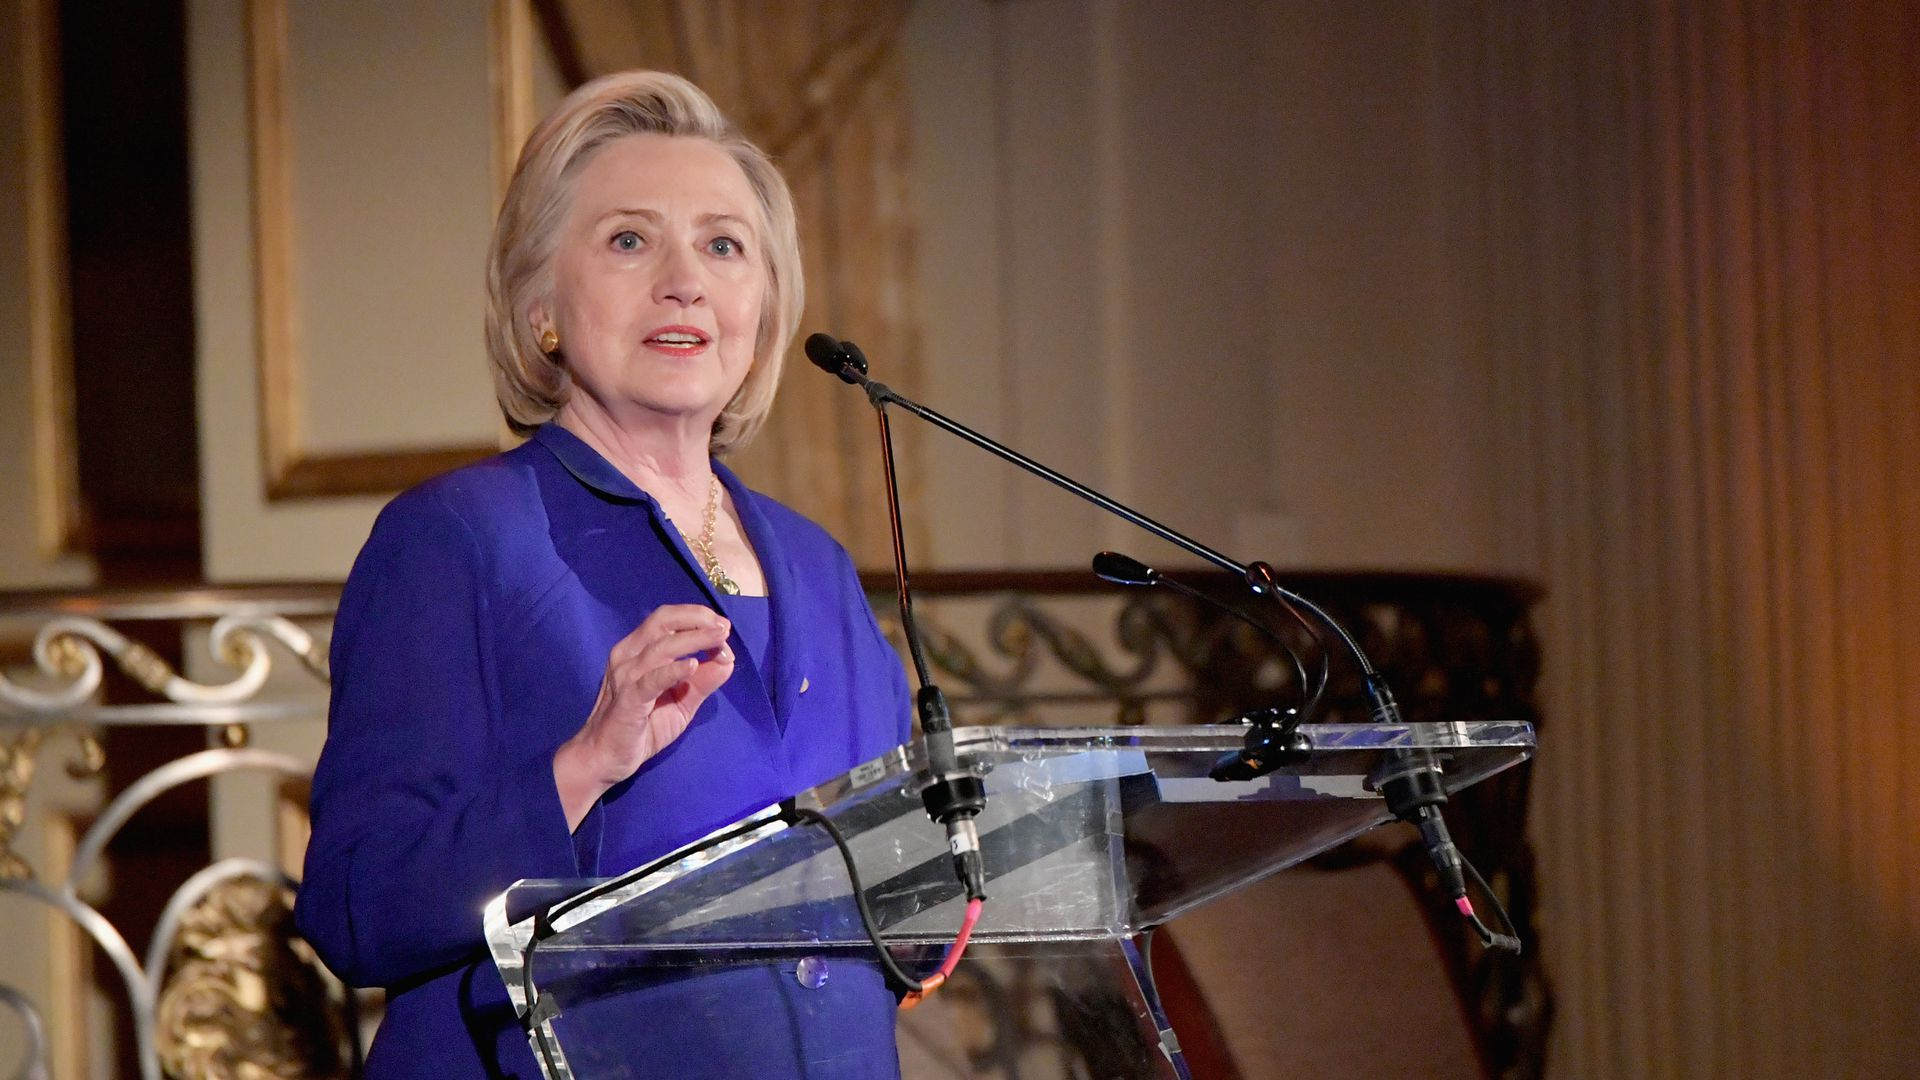 s Hillary Clinton speaks onstage during the 8th Annual Elly Awards hosted by the Women's Forum of New York at The Plaza Hotel on June 18, 2018 in New York City.